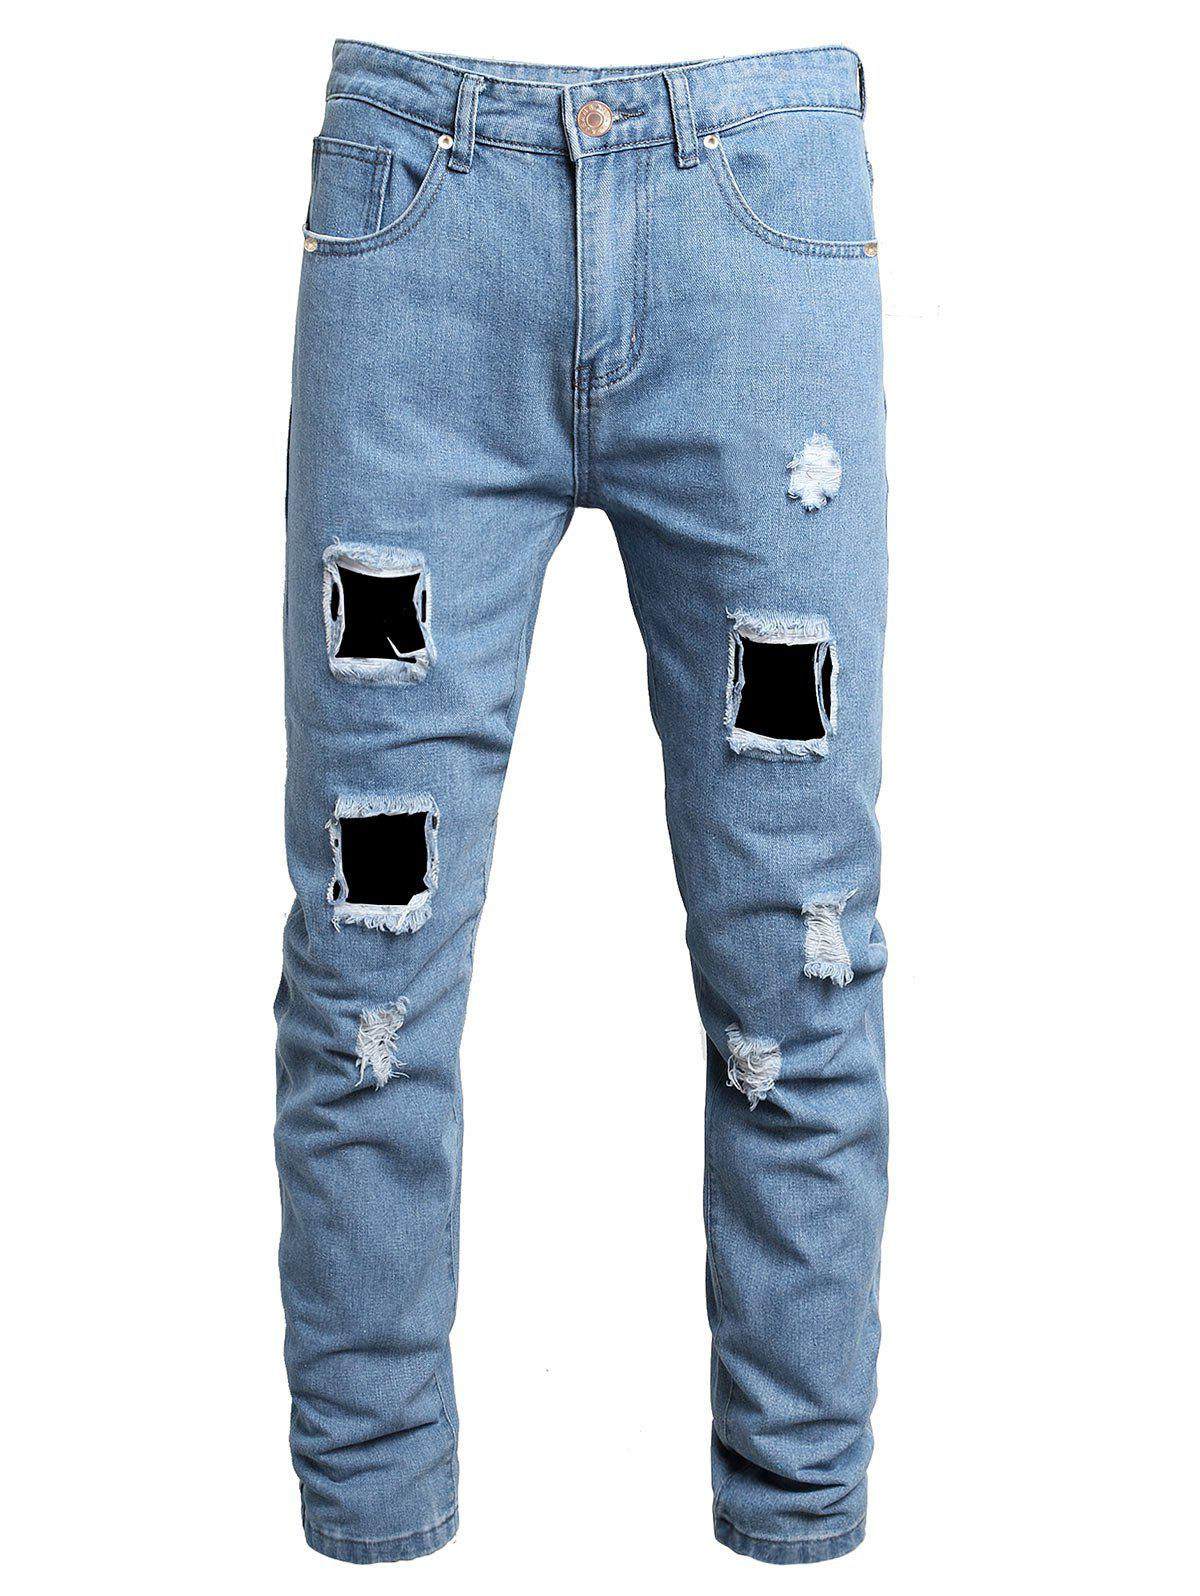 Destroy Wash Ripped Long Jeans - JEANS BLUE 38